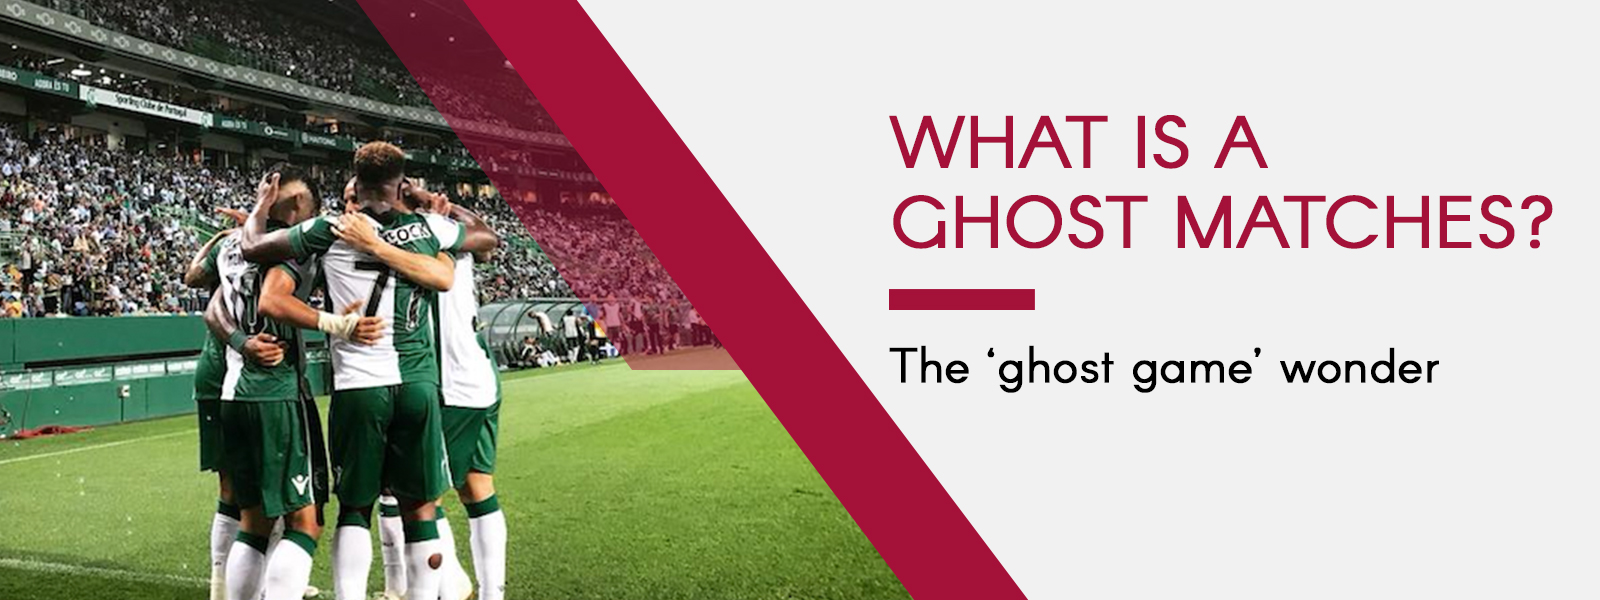 What Is A Ghost Match? The 'Ghost Game' Wonder